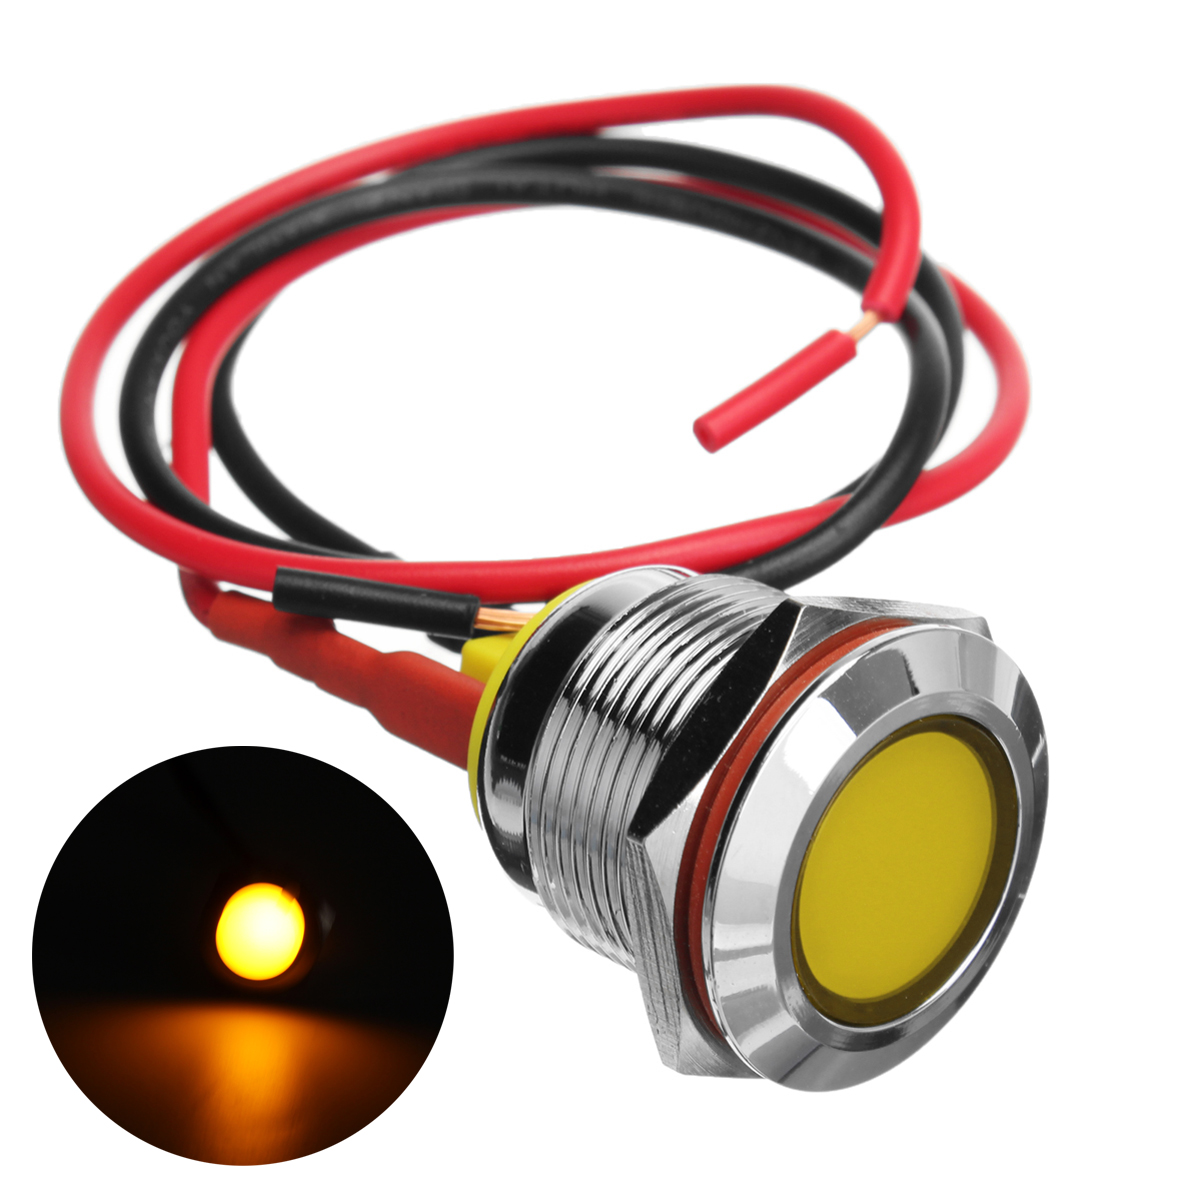 New 1Pc DC 6V 19mm IP67 Boat Light Waterproof Underwater LED Light Yellow/Red/Blue/White Swimming Pool Pond